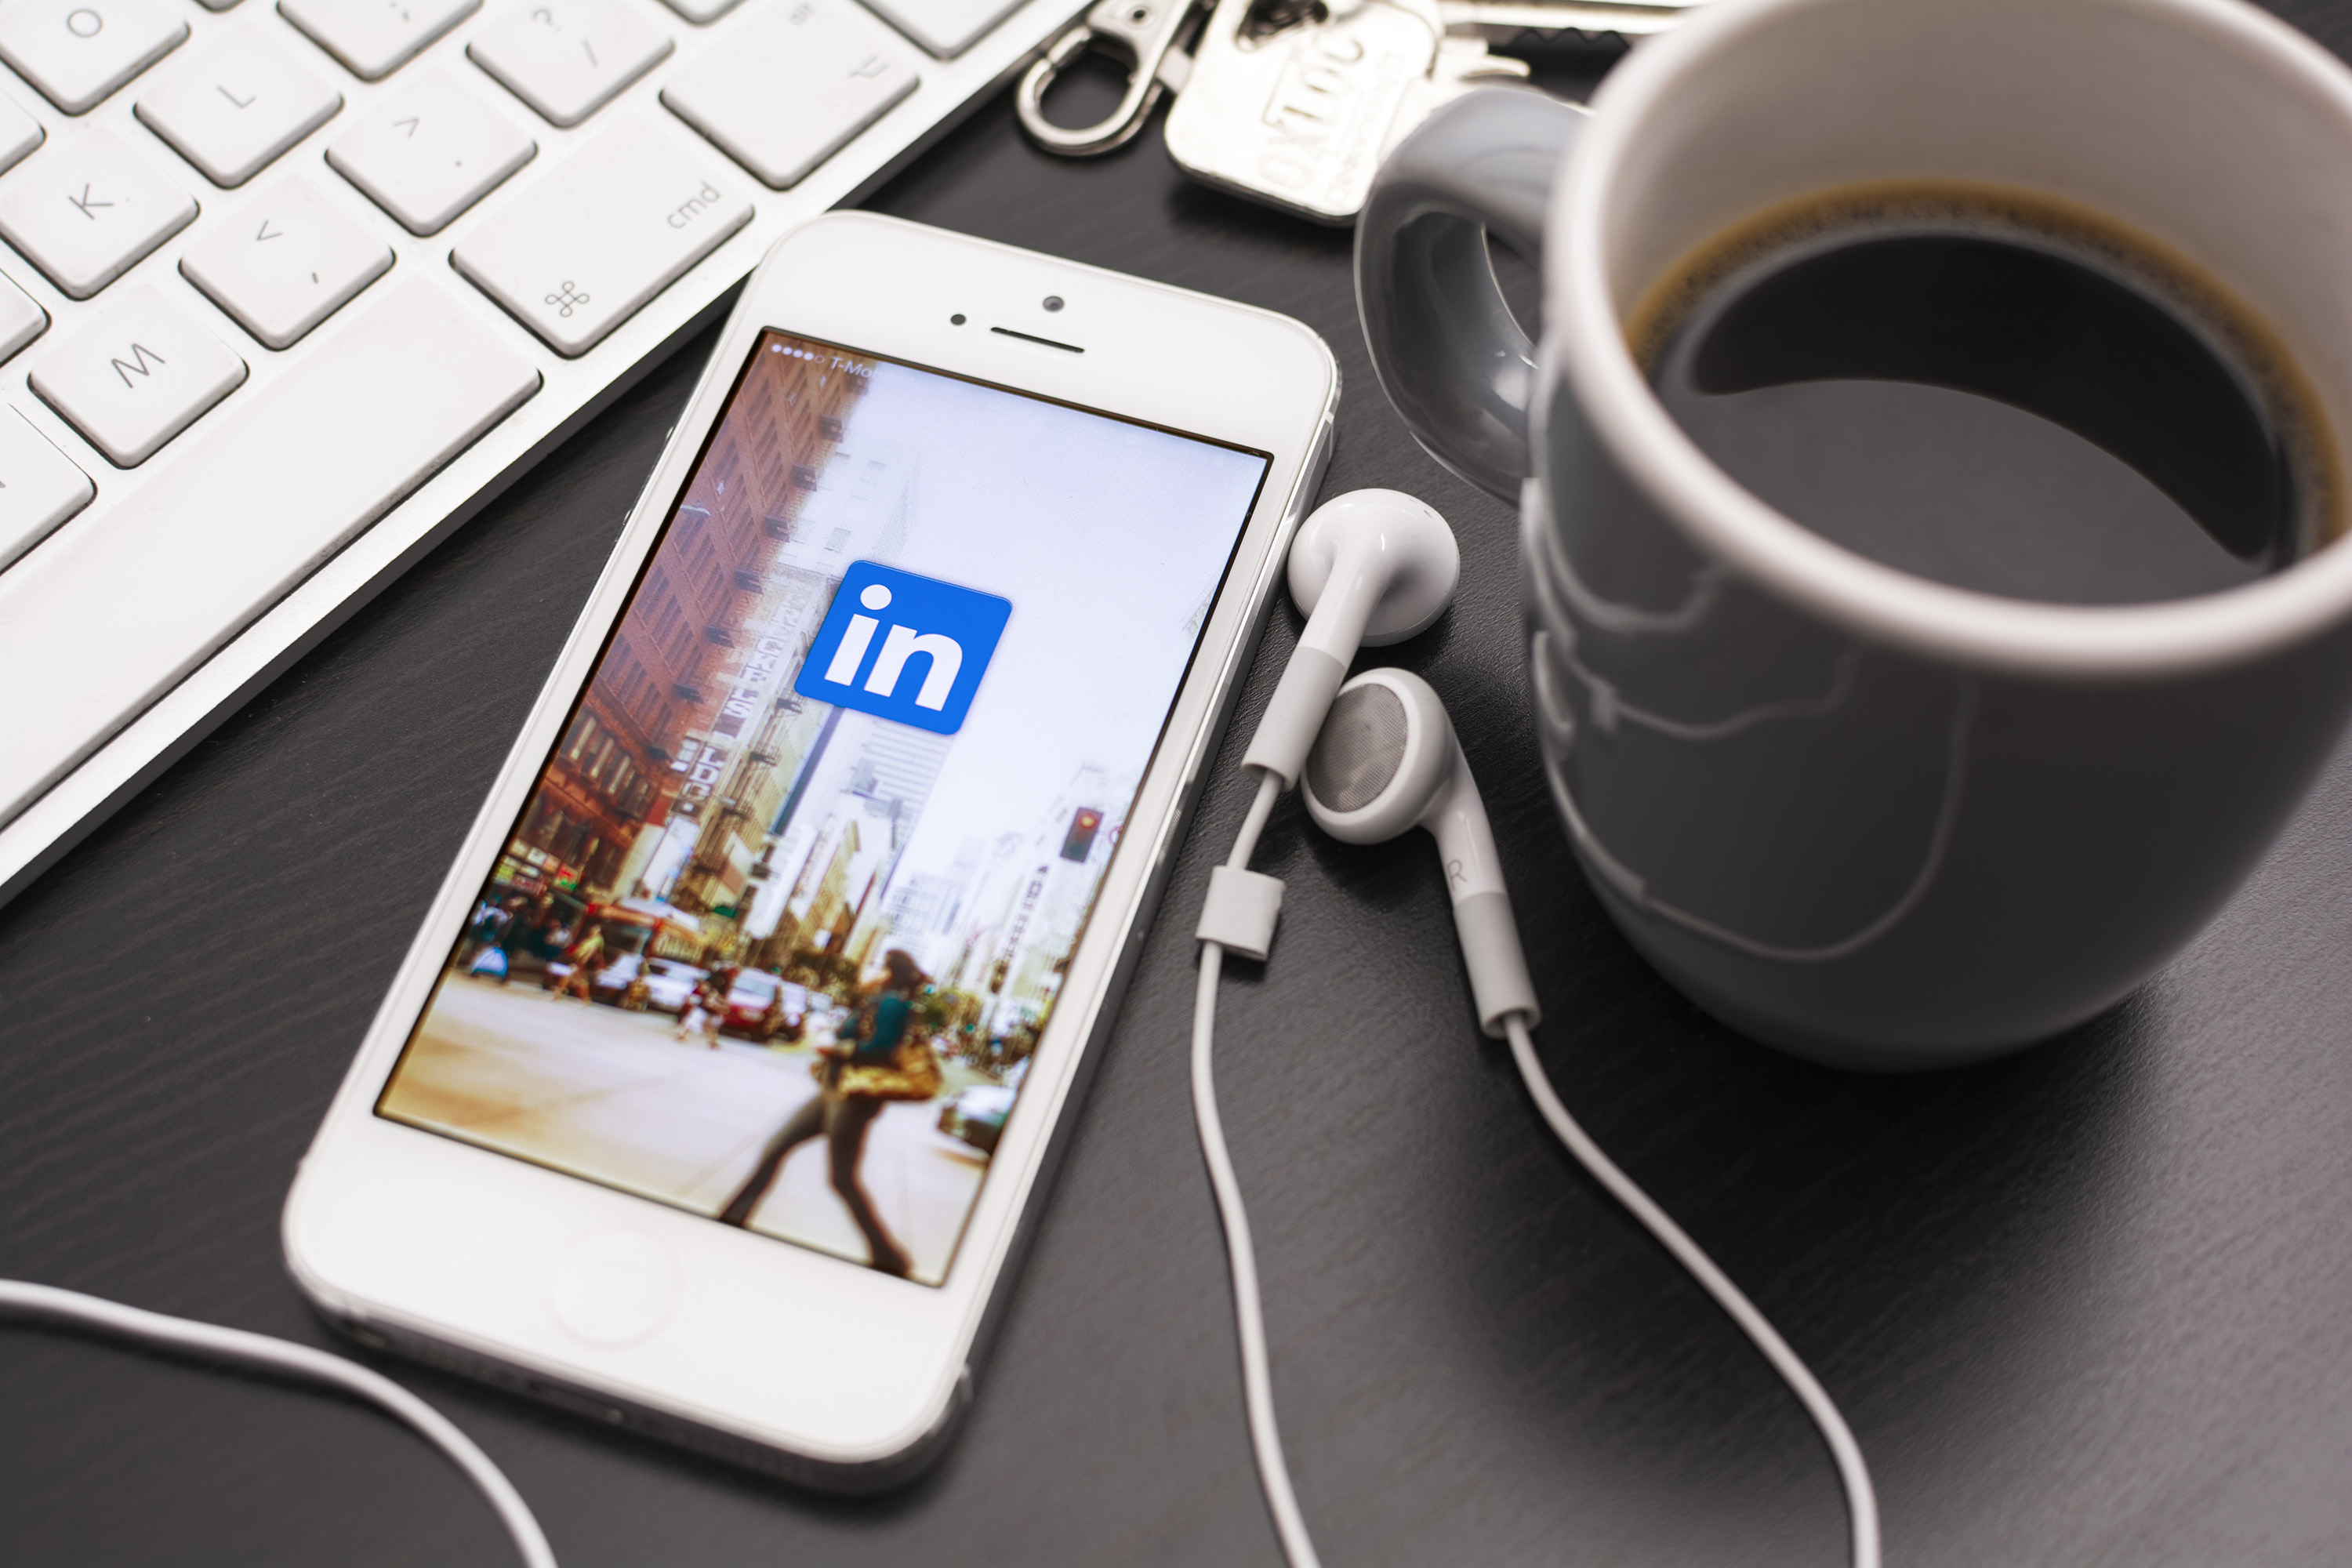 LinkedIn will soon include auto-playing video ads in your Newsfeed